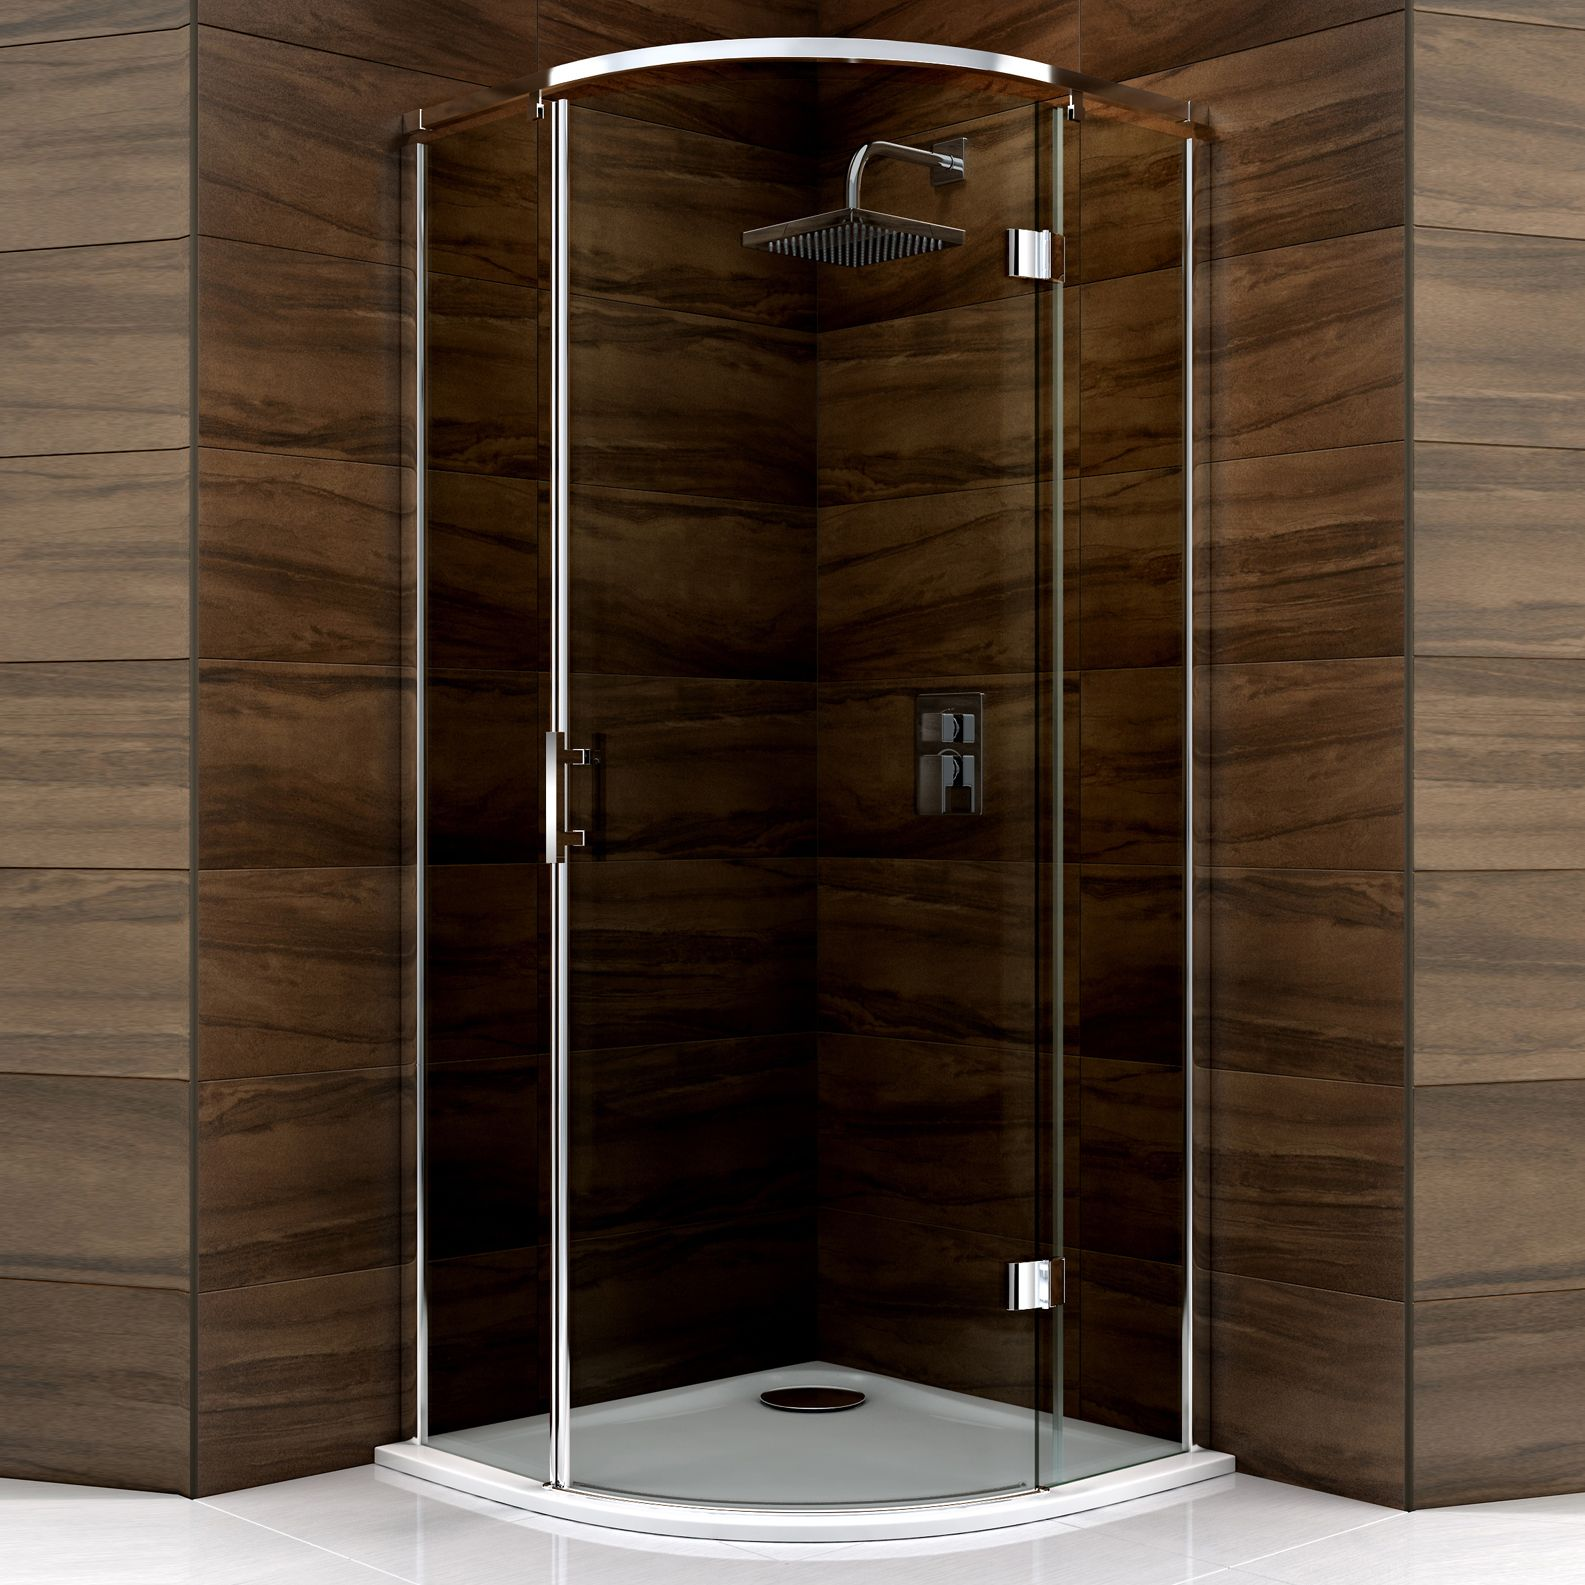 Cooke & Lewis Cascata Quadrant Hinged Shower Enclosure, Tray & Waste ...